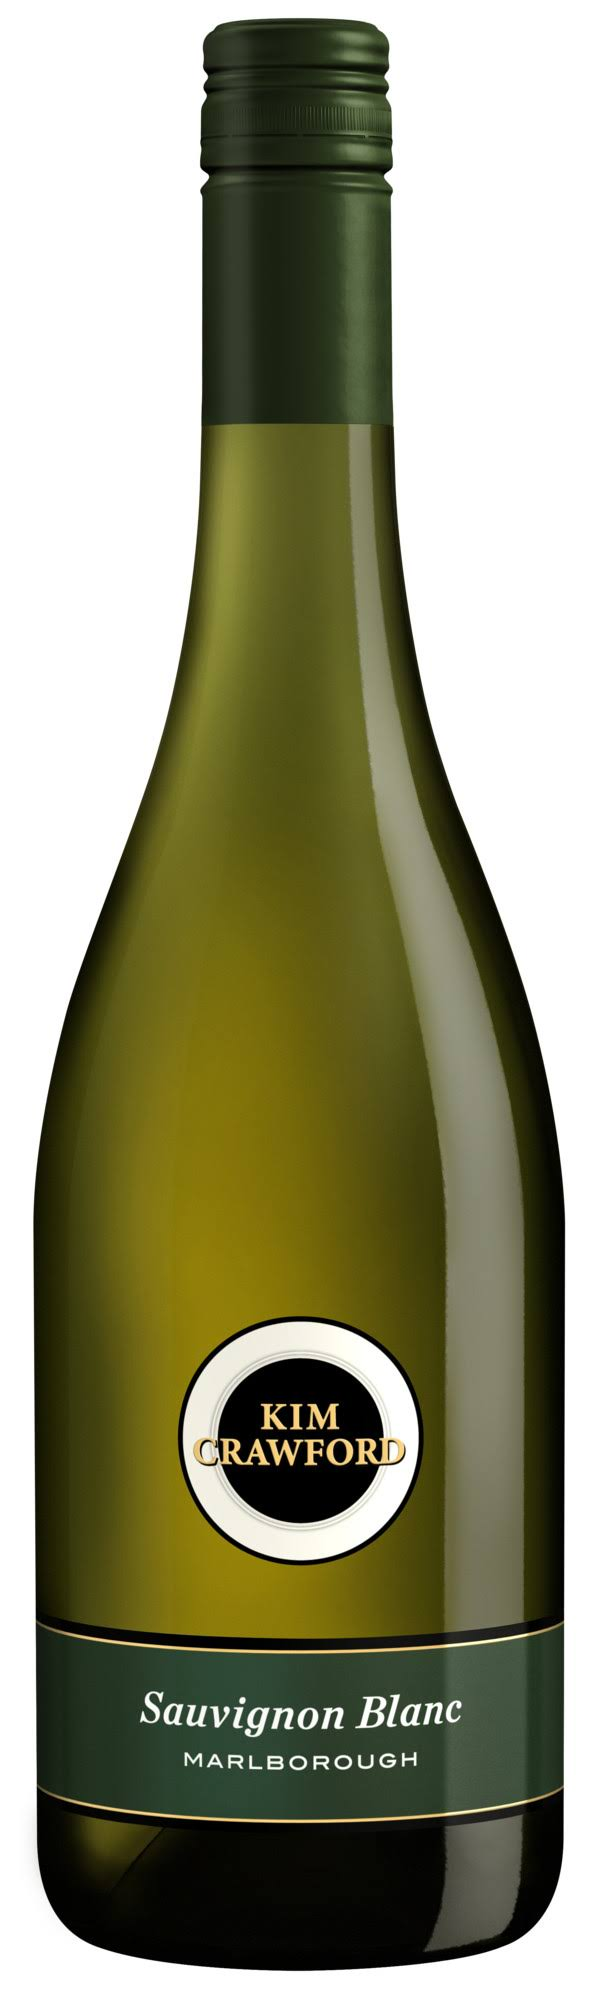 Kim Crawford Marlborough Sauvignon Blanc - New Zealand